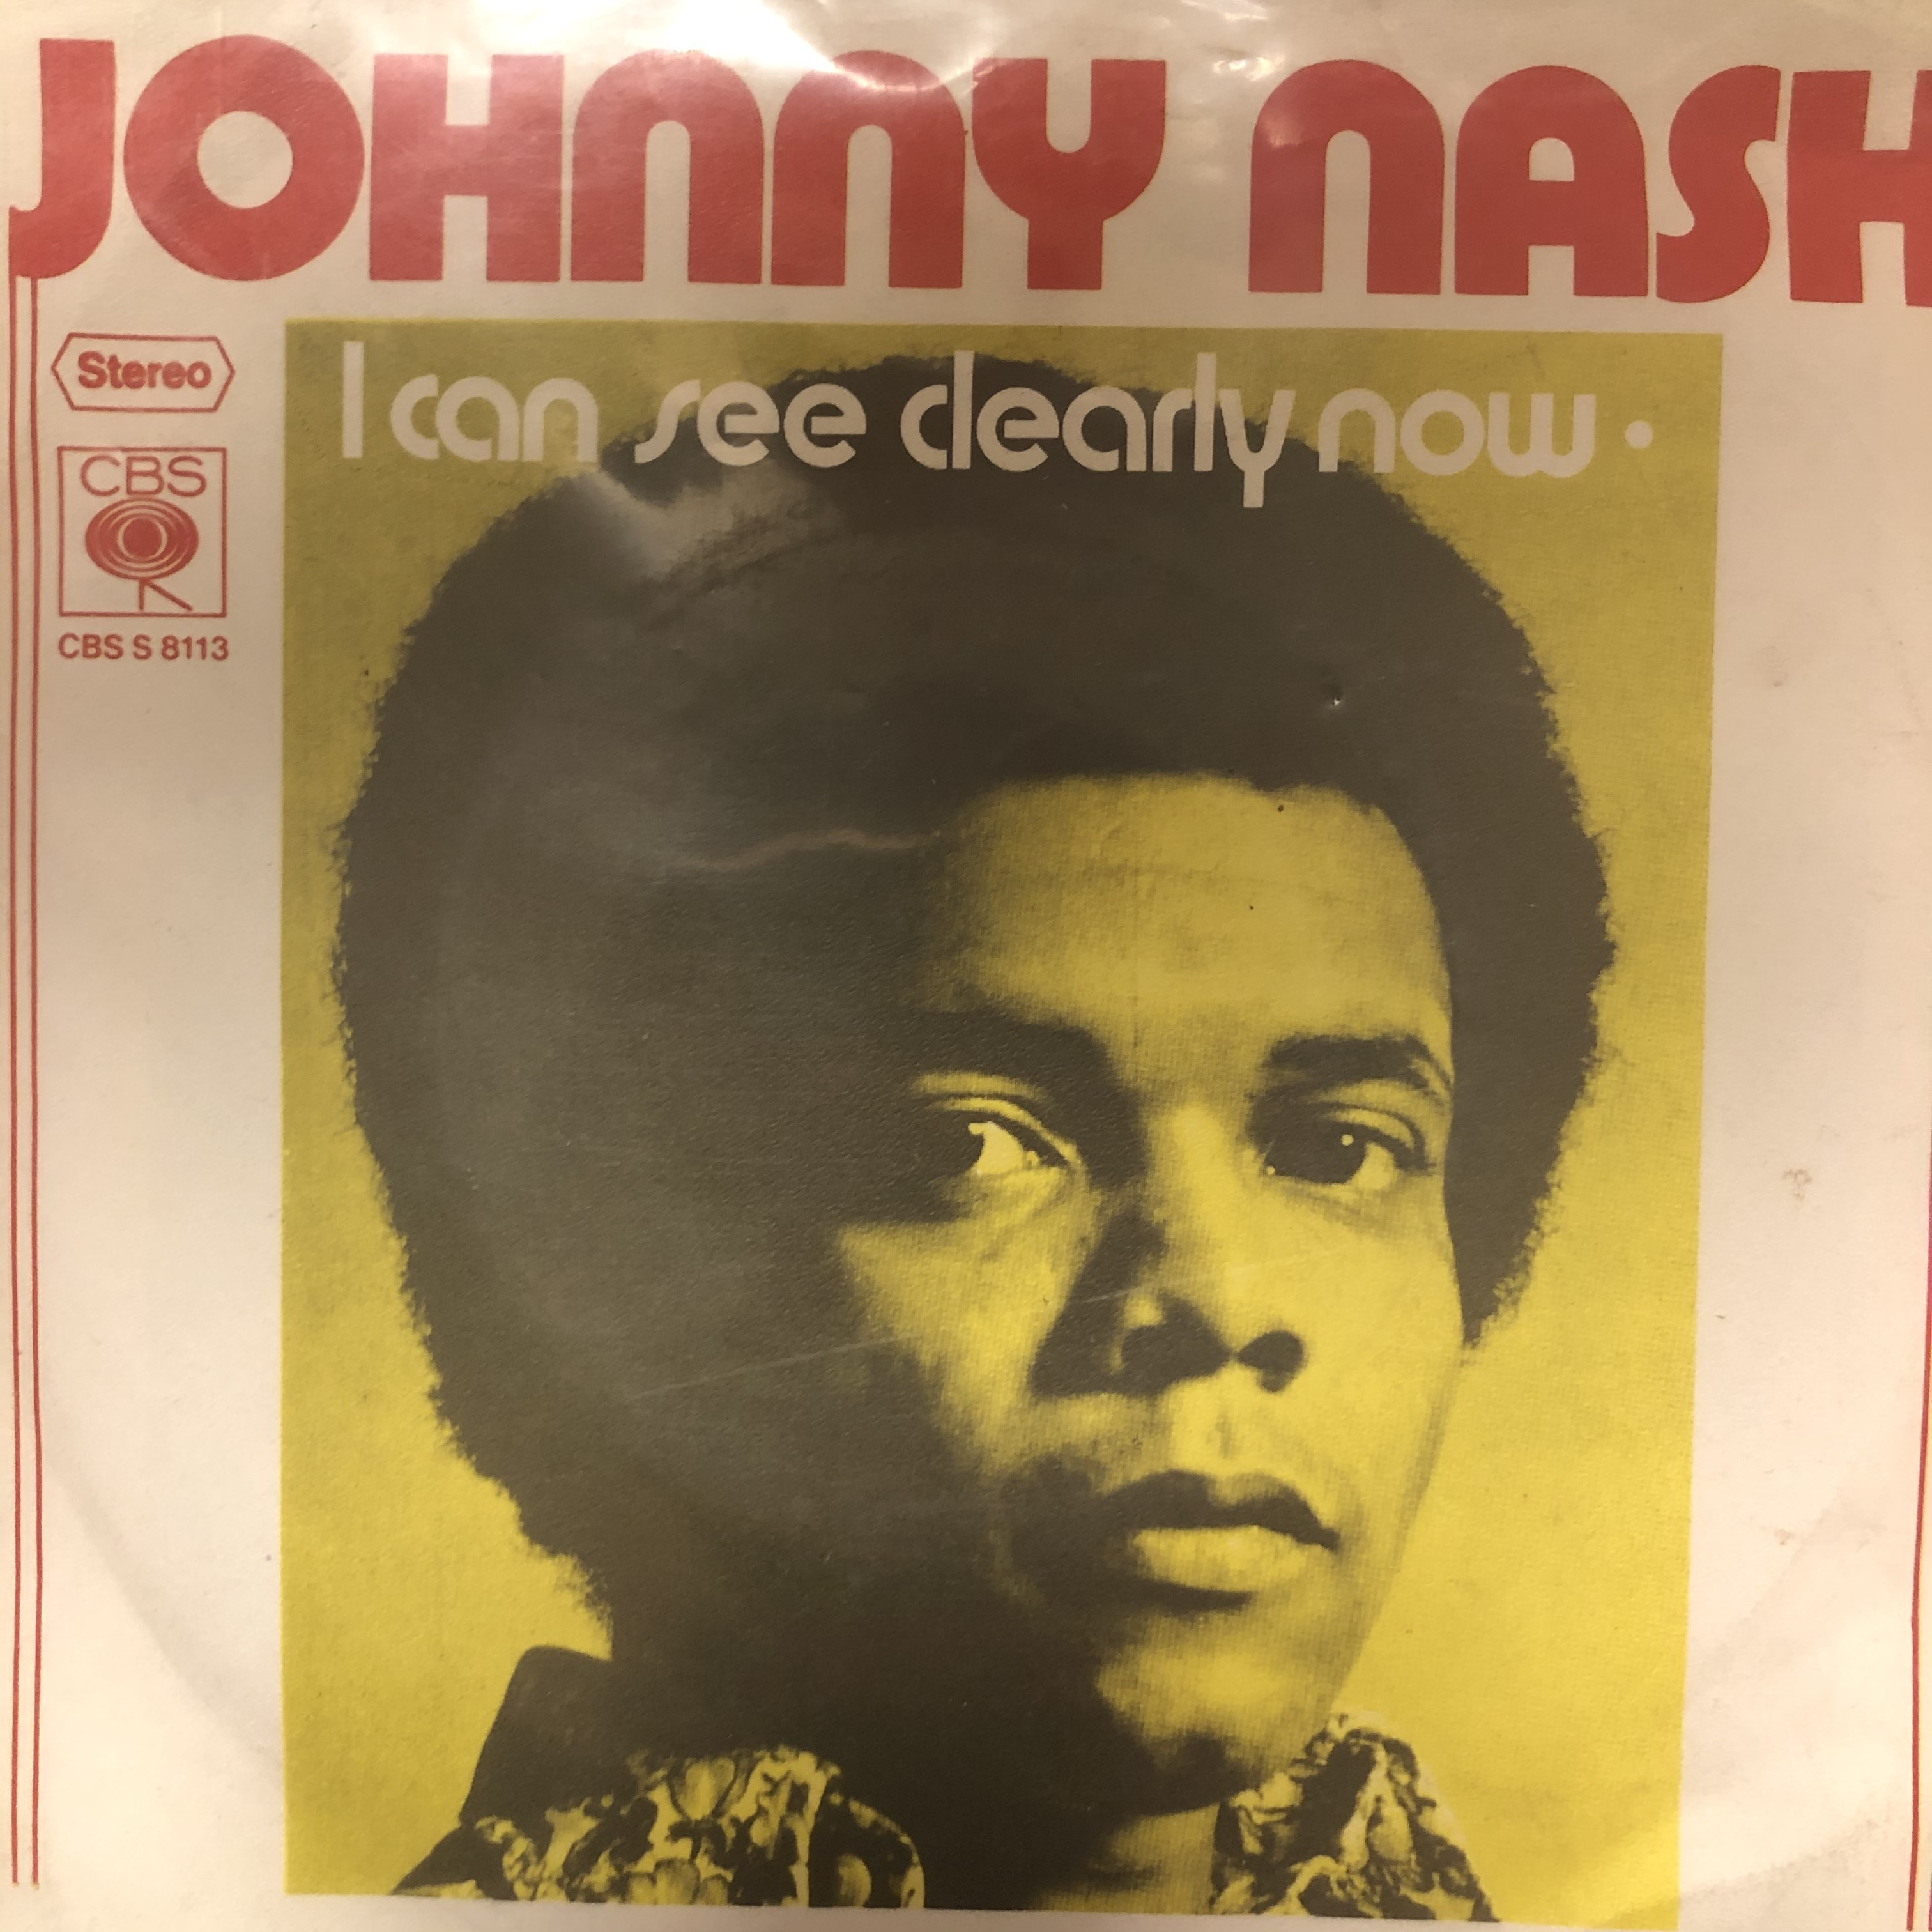 Johnny Nash - I Can See Clearly Now【7-20492】